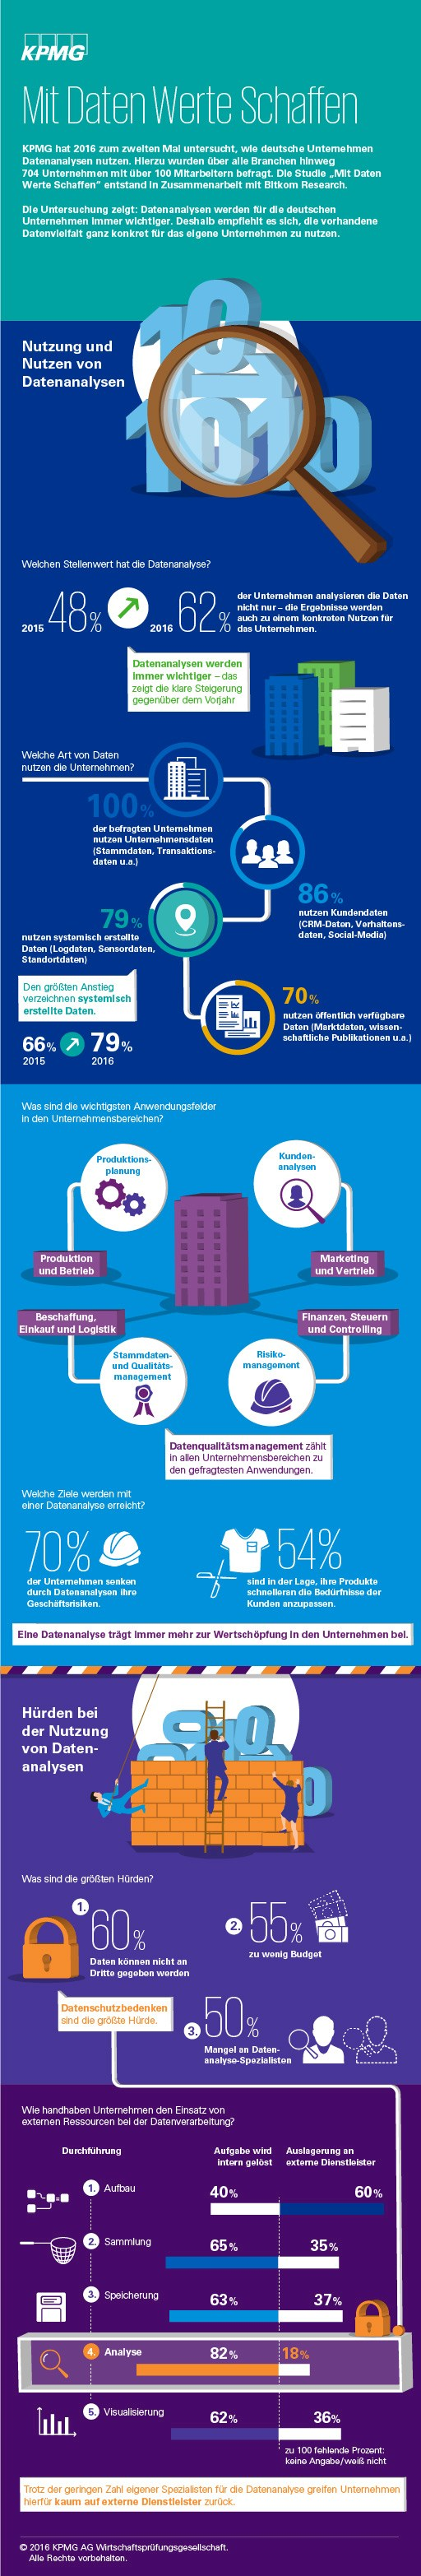 infografik kpmg bitkom big data analysen